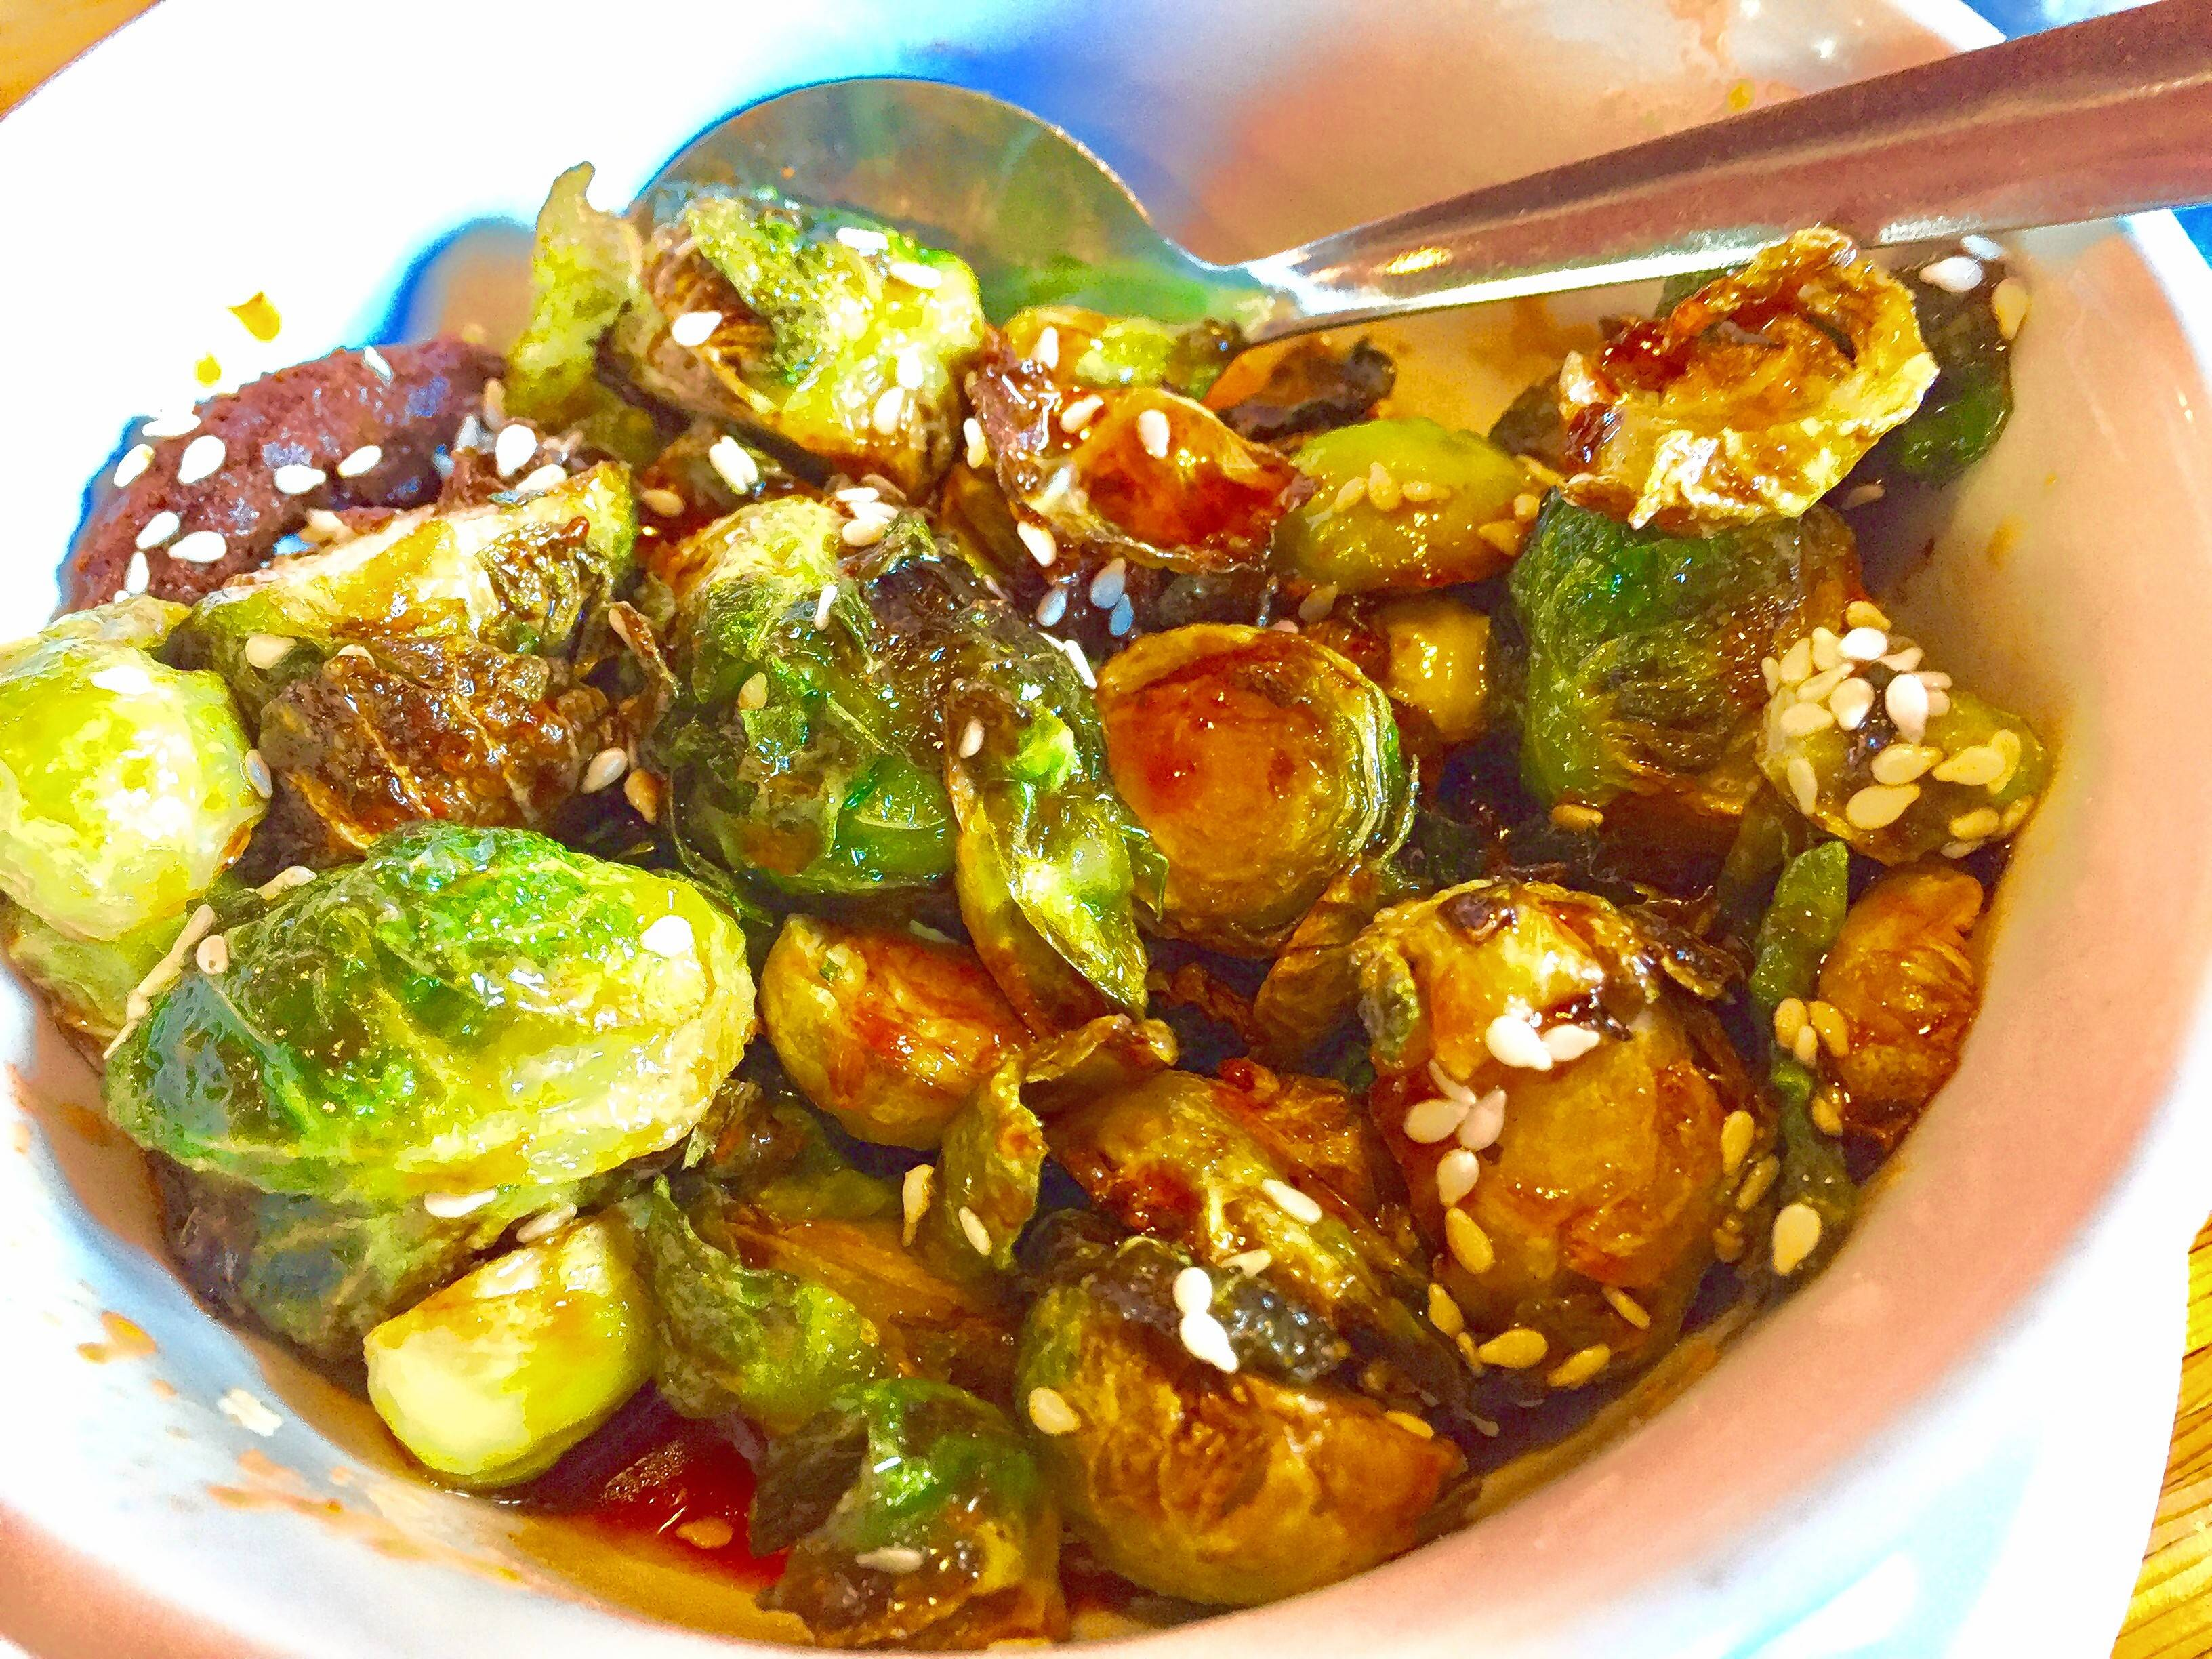 Spicy sweet Brussels spouts at Pig Minds Brewing. Its restaurant offers a 100-percent plant-based menu.